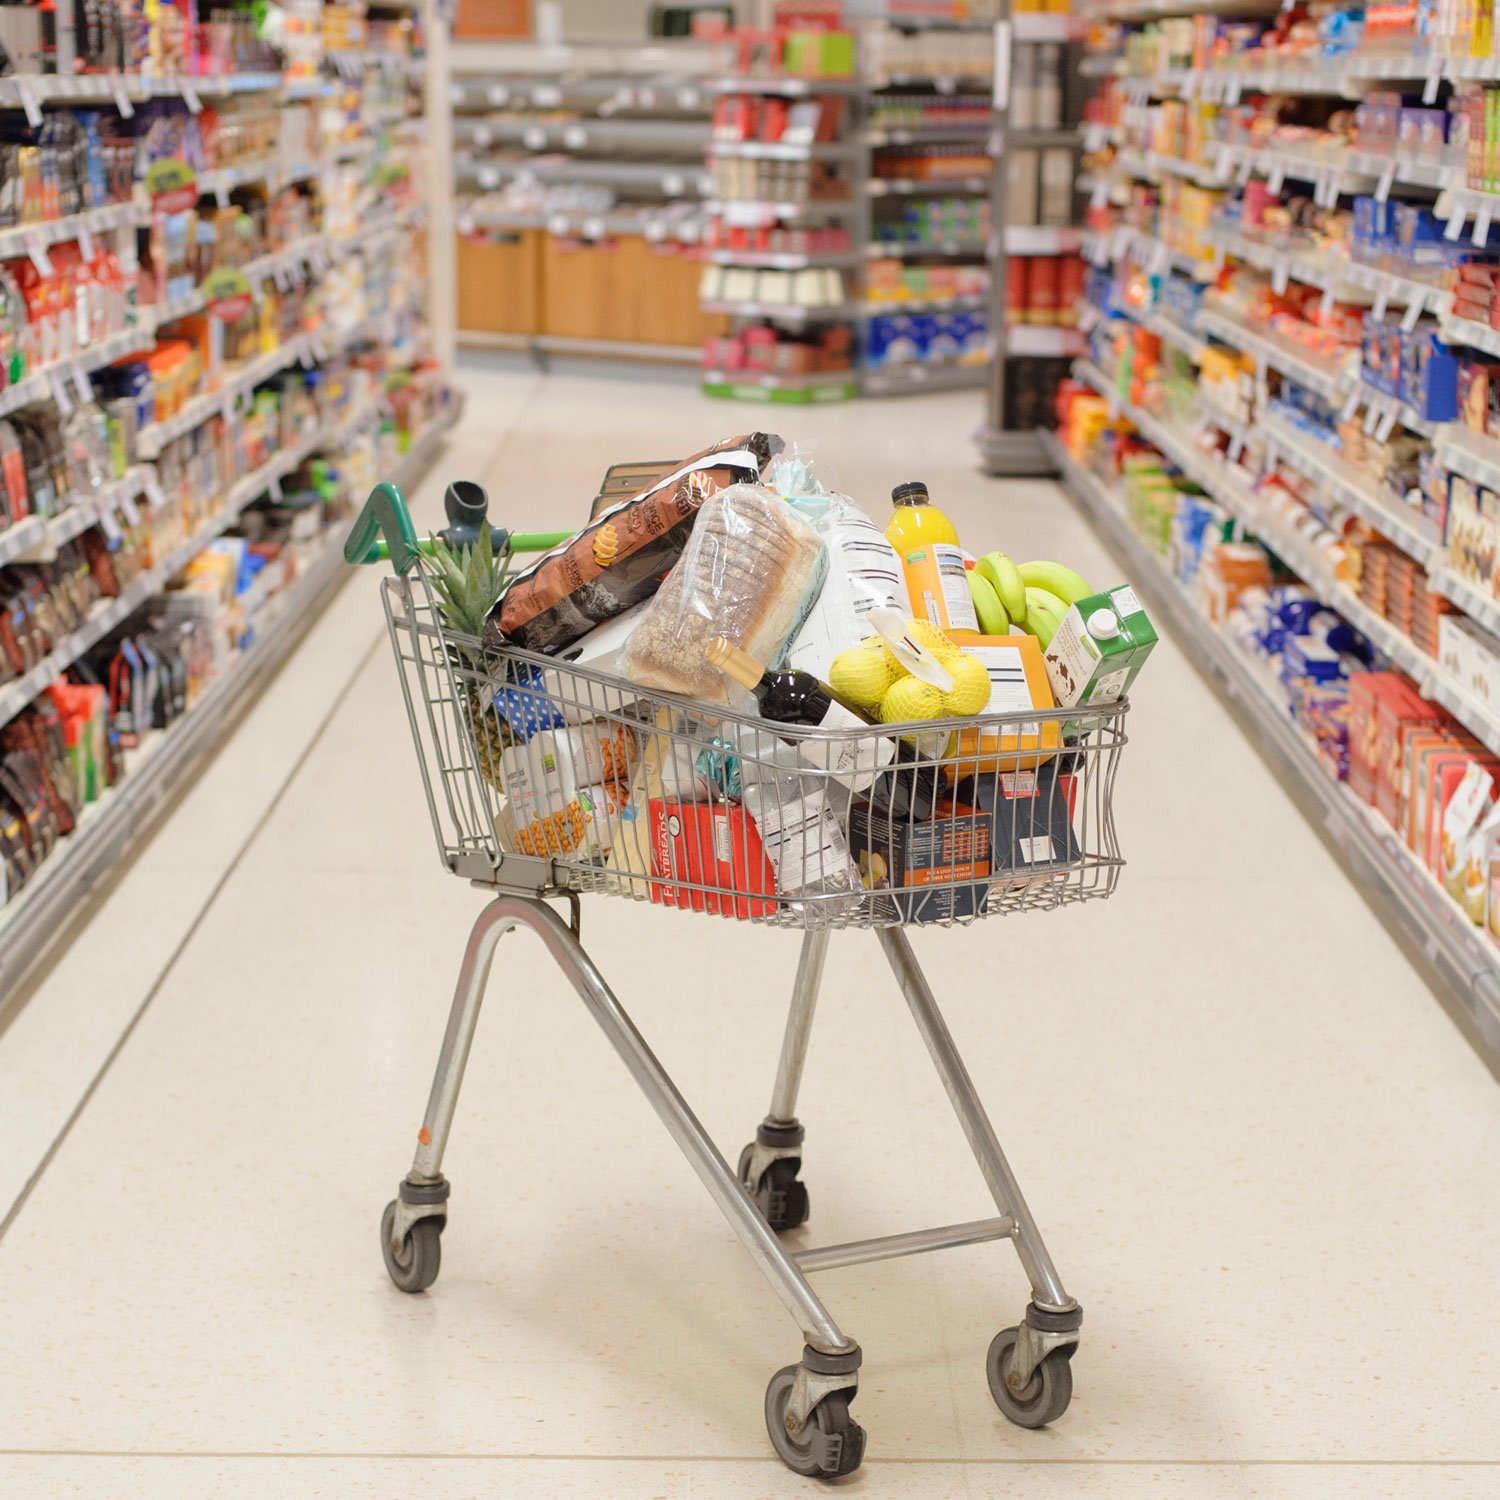 9 Grocery Items to Ditch to Reduce Inflammation